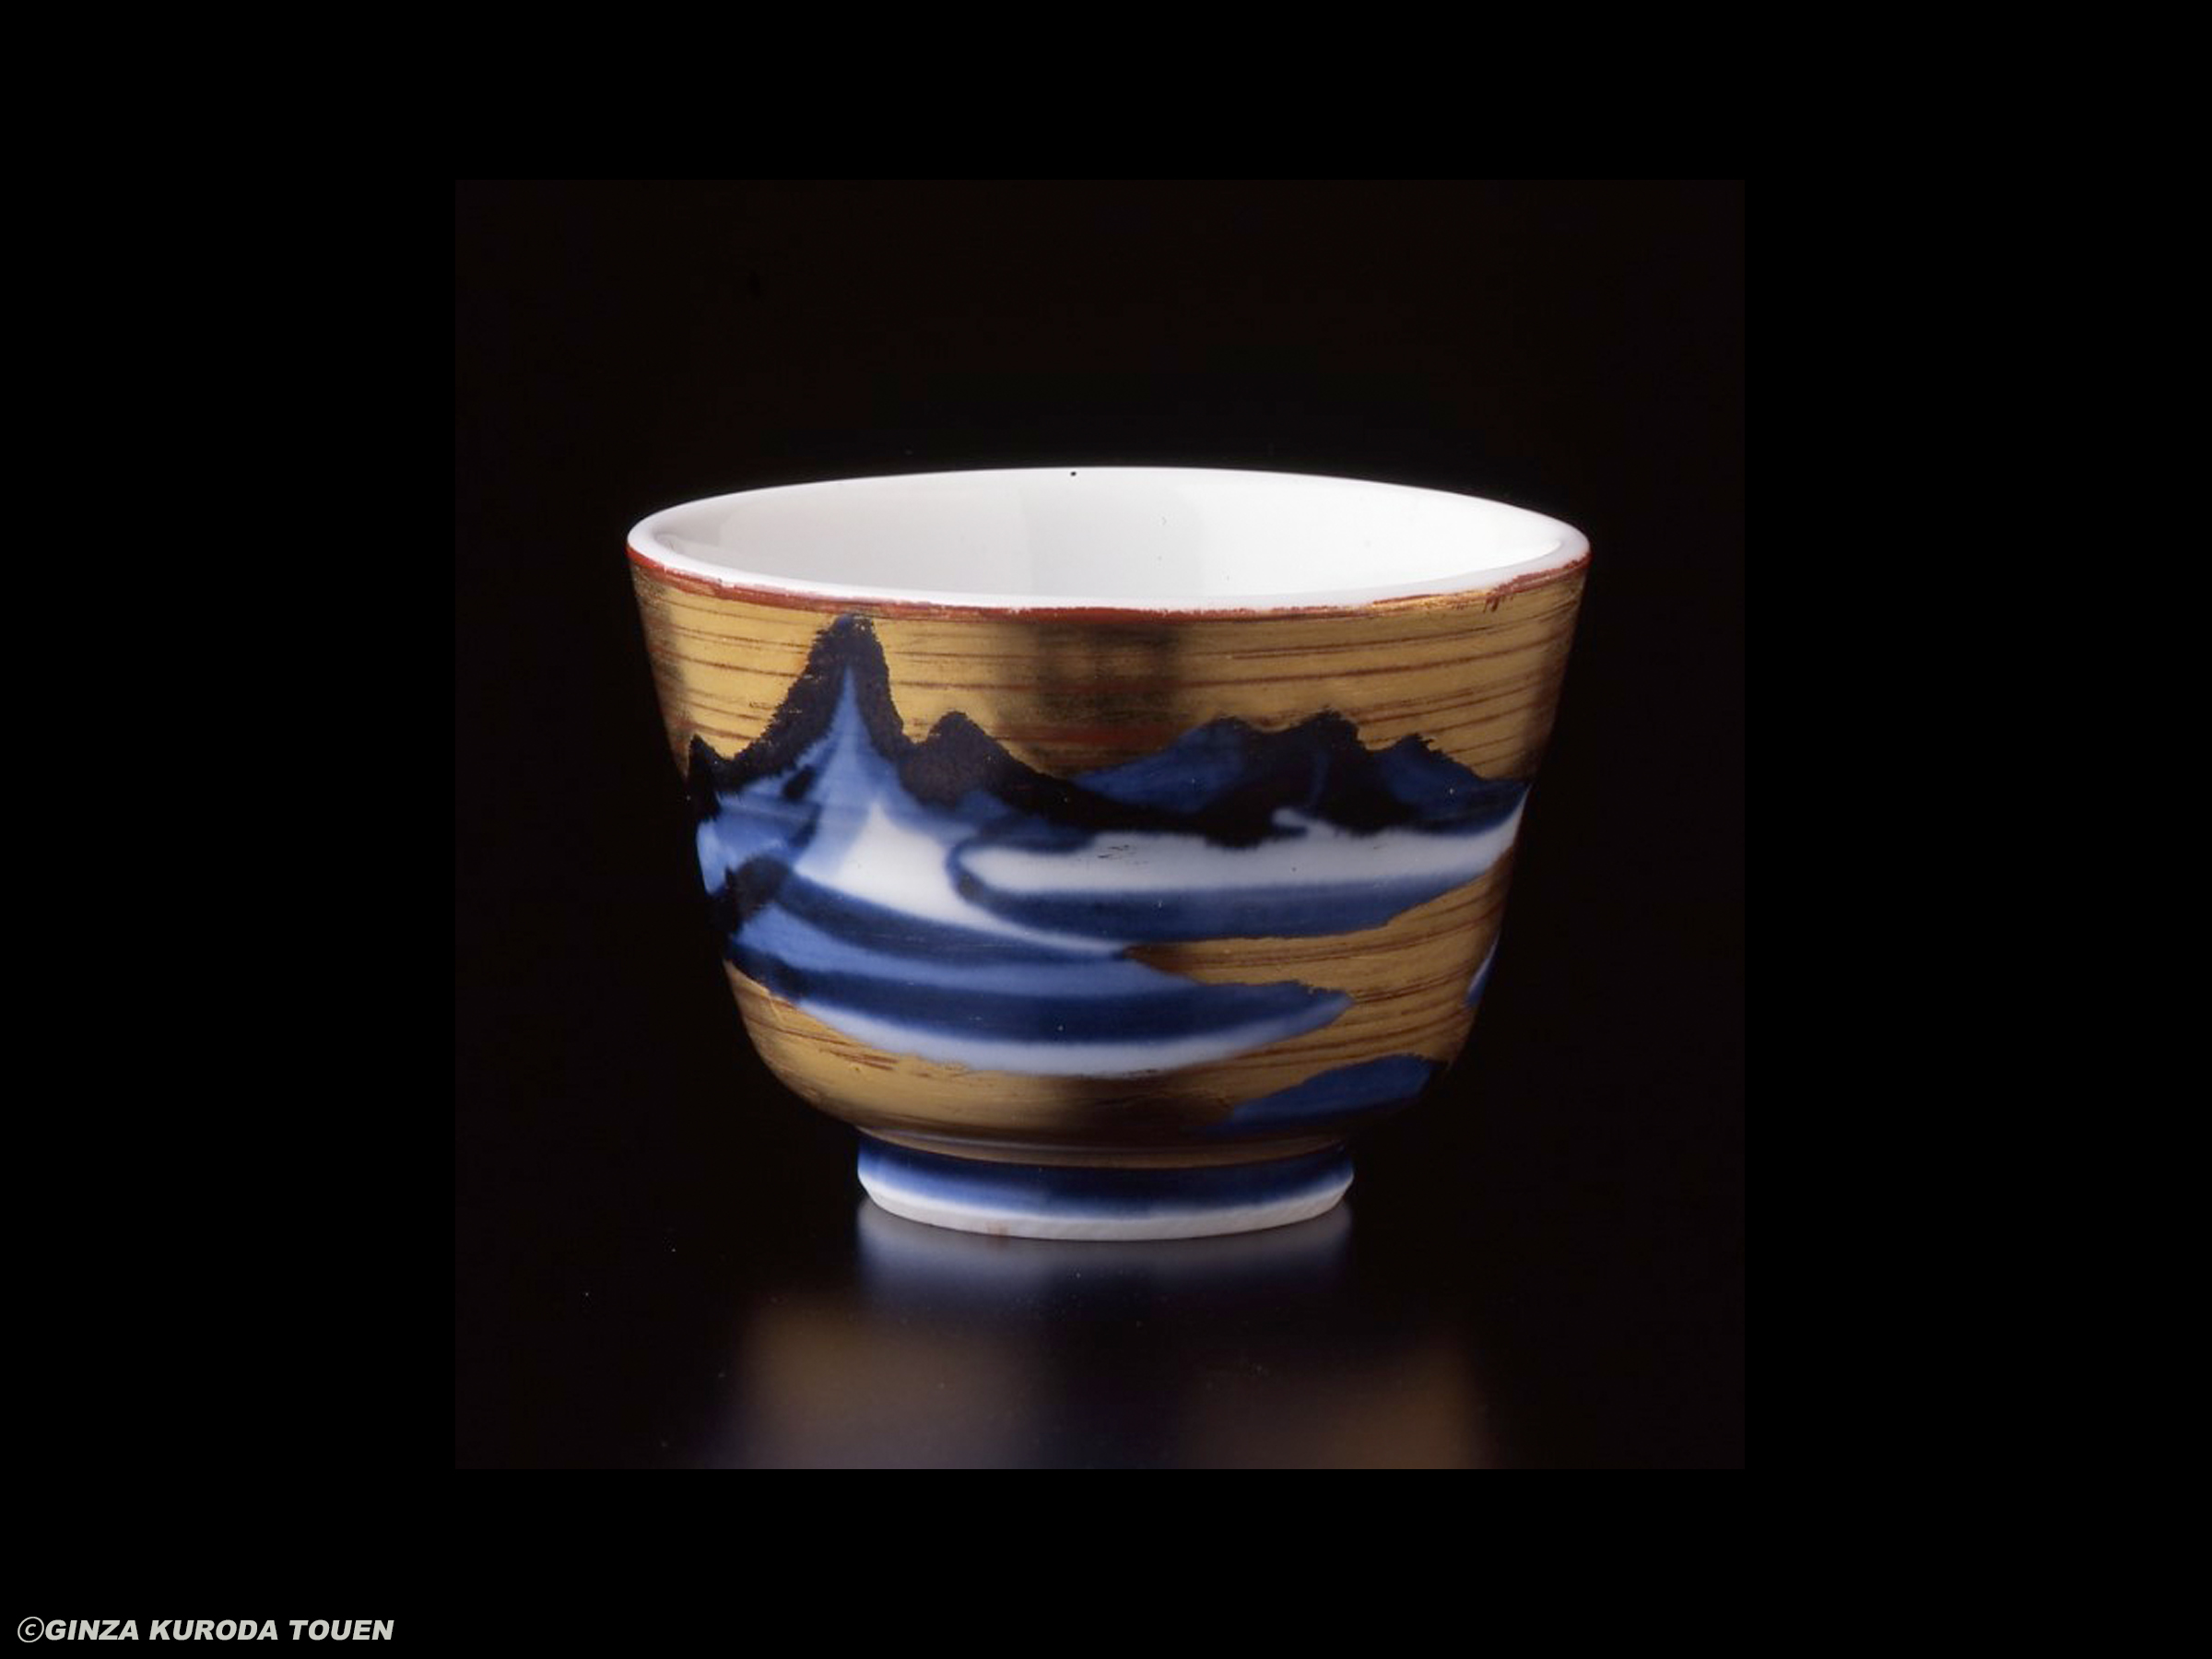 Yuzo Kondo: Sake cup, Sometsuke and gold painting